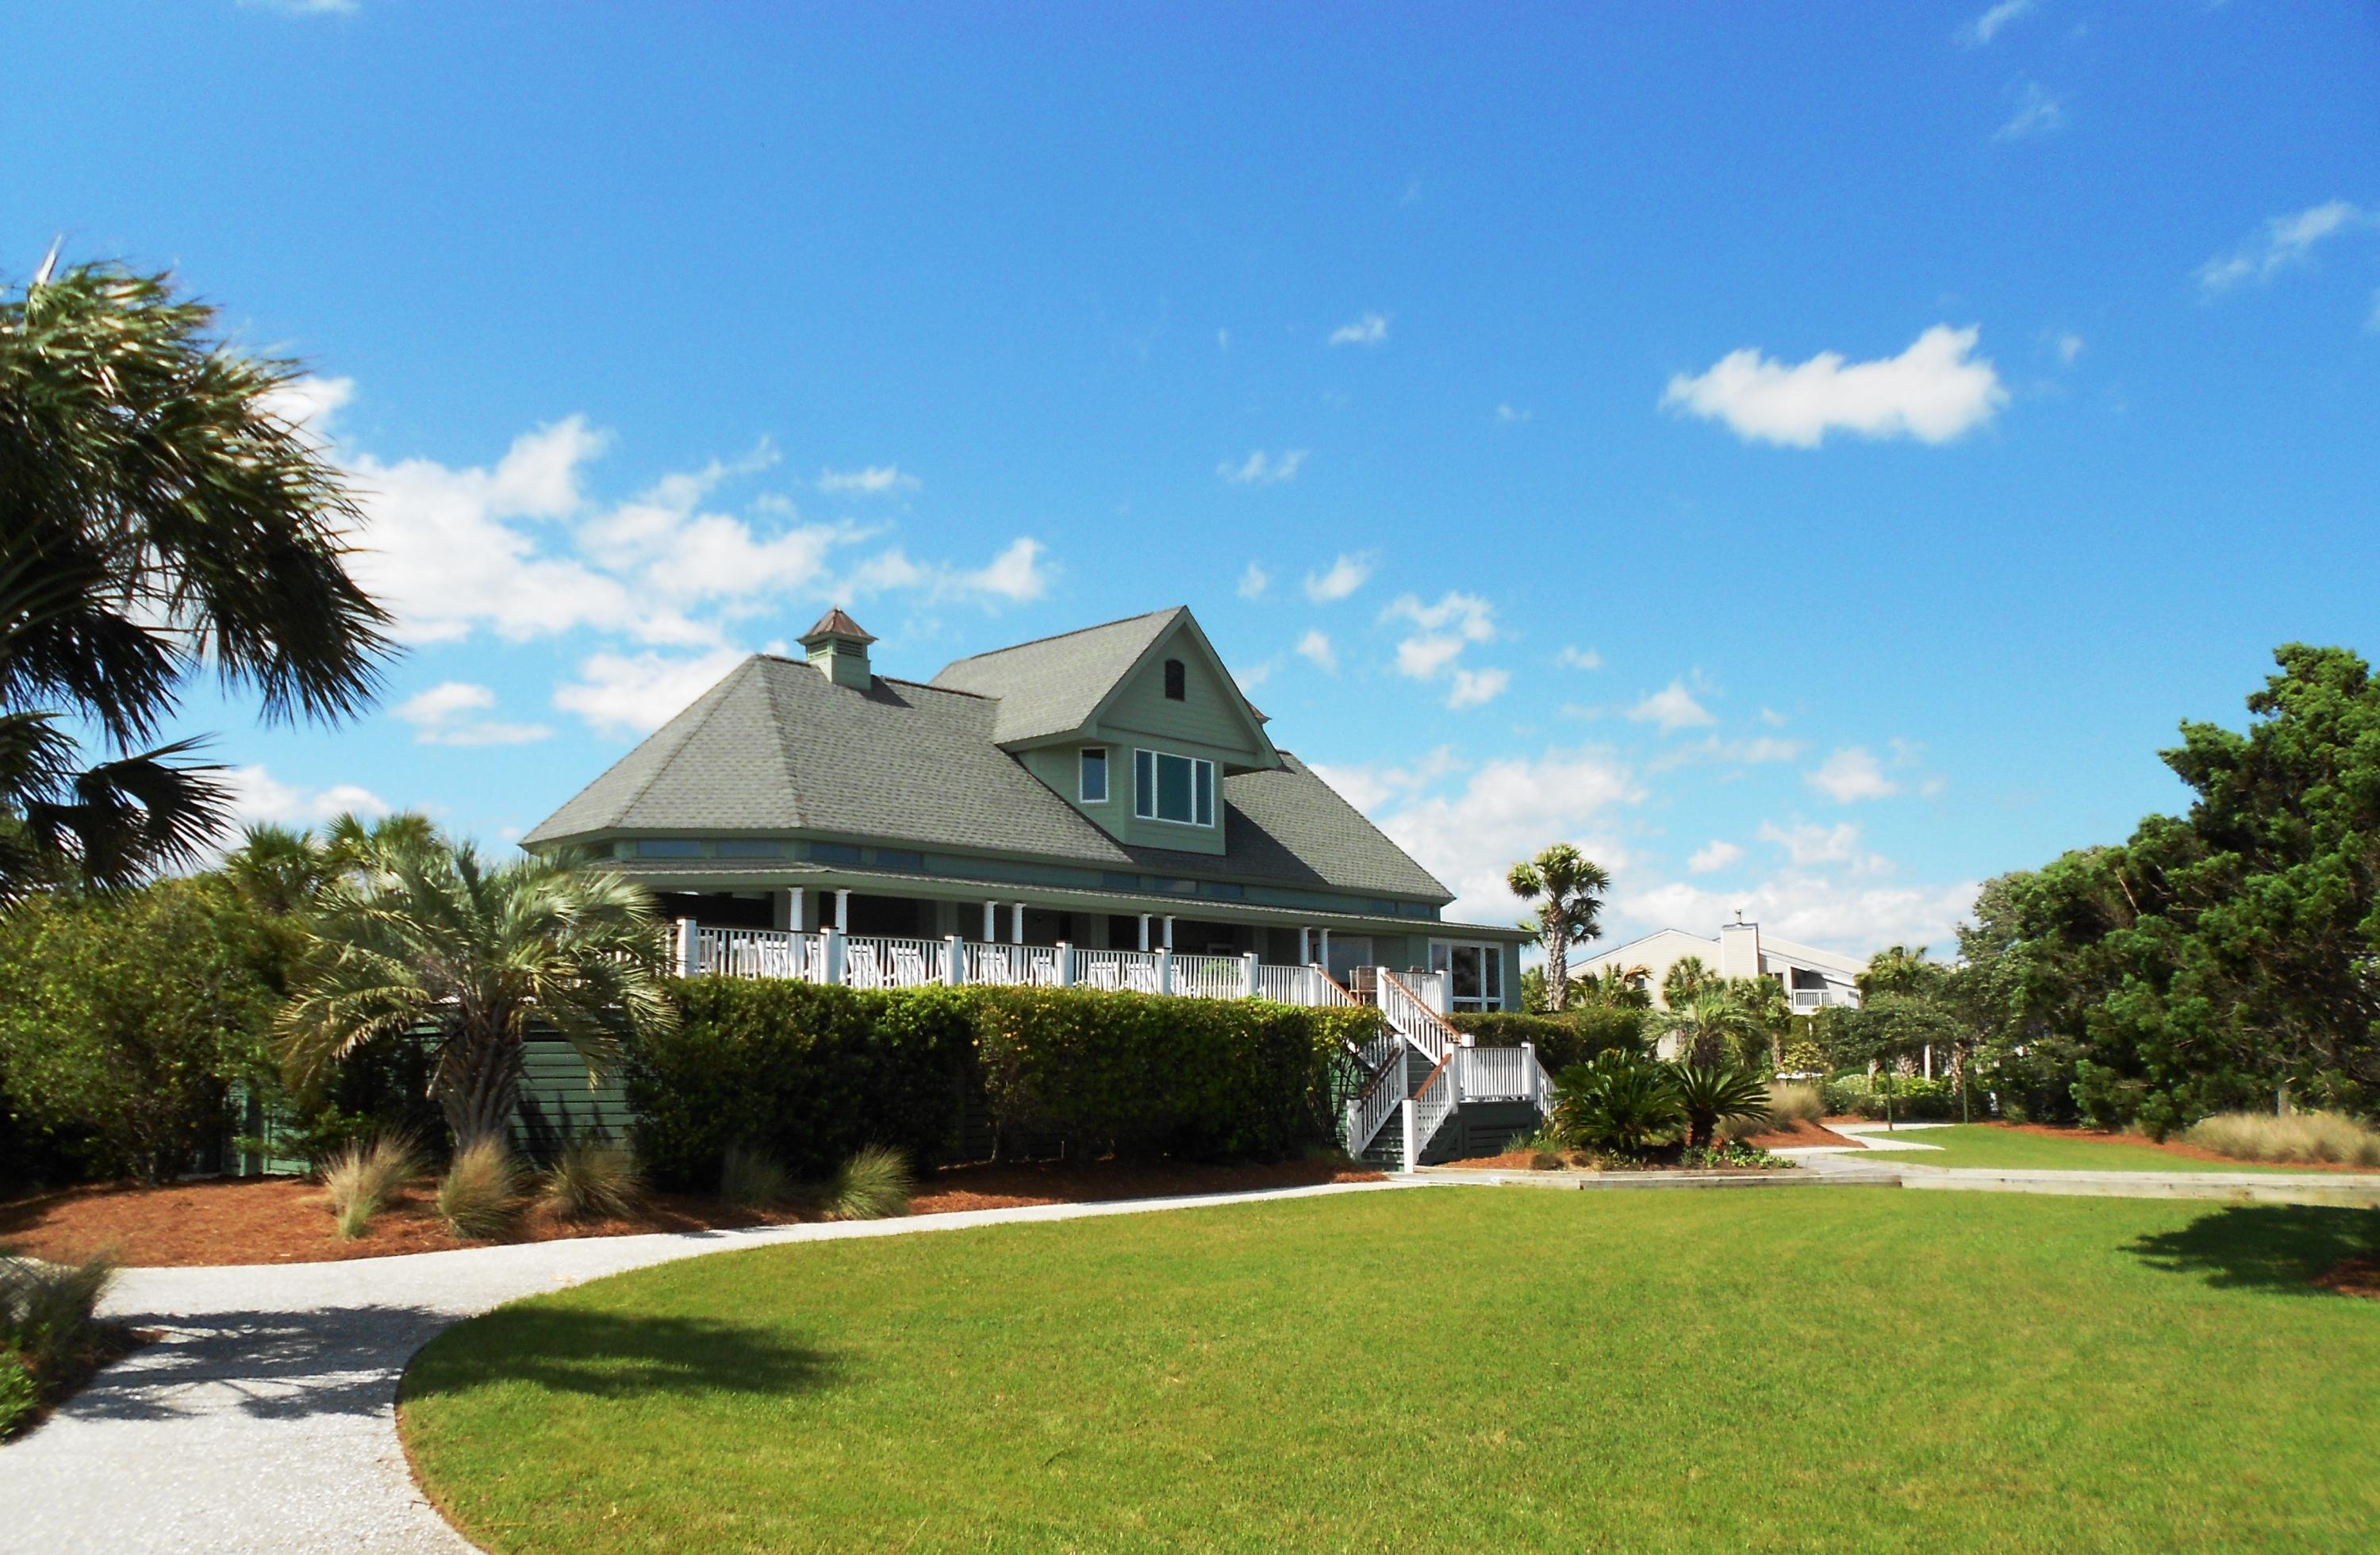 Wild Dunes Homes For Sale - 103 Tidewater, Isle of Palms, SC - 10